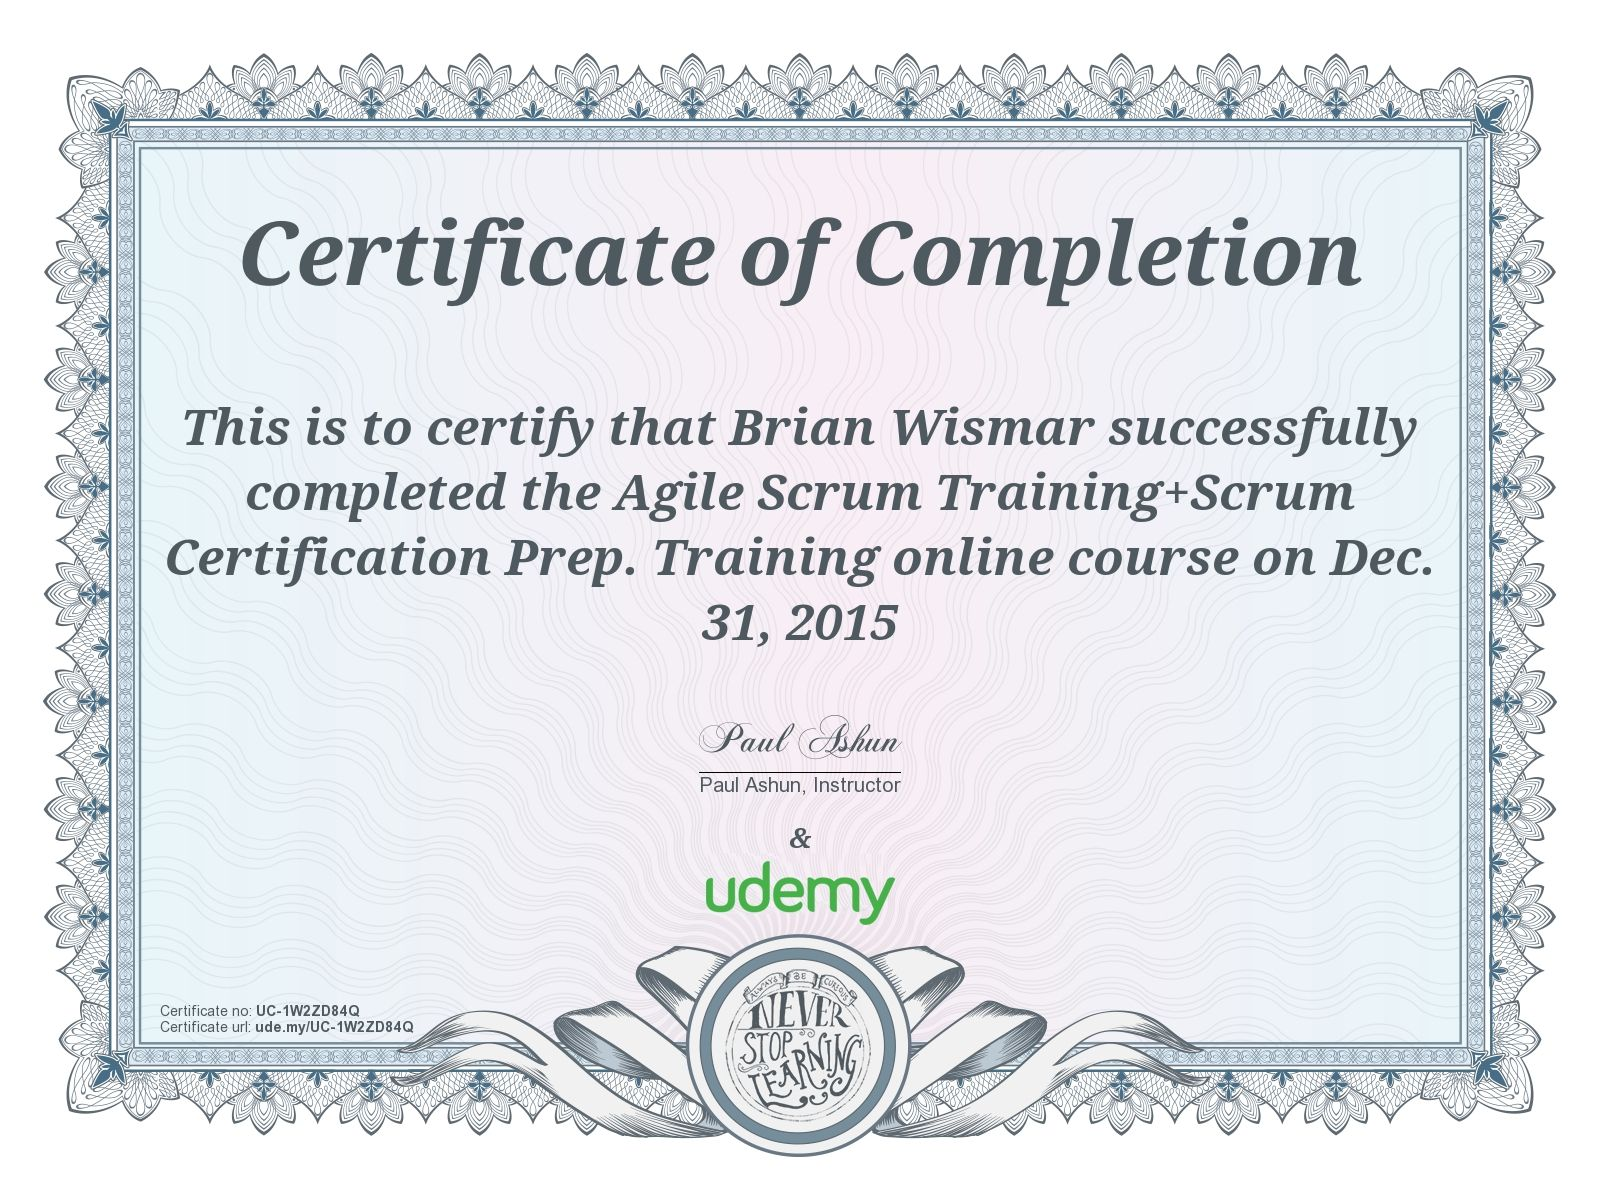 Completion Certificate For Agile Scrum Training+Scrum Certification Prep.  Training To Certificate Of Completion Training